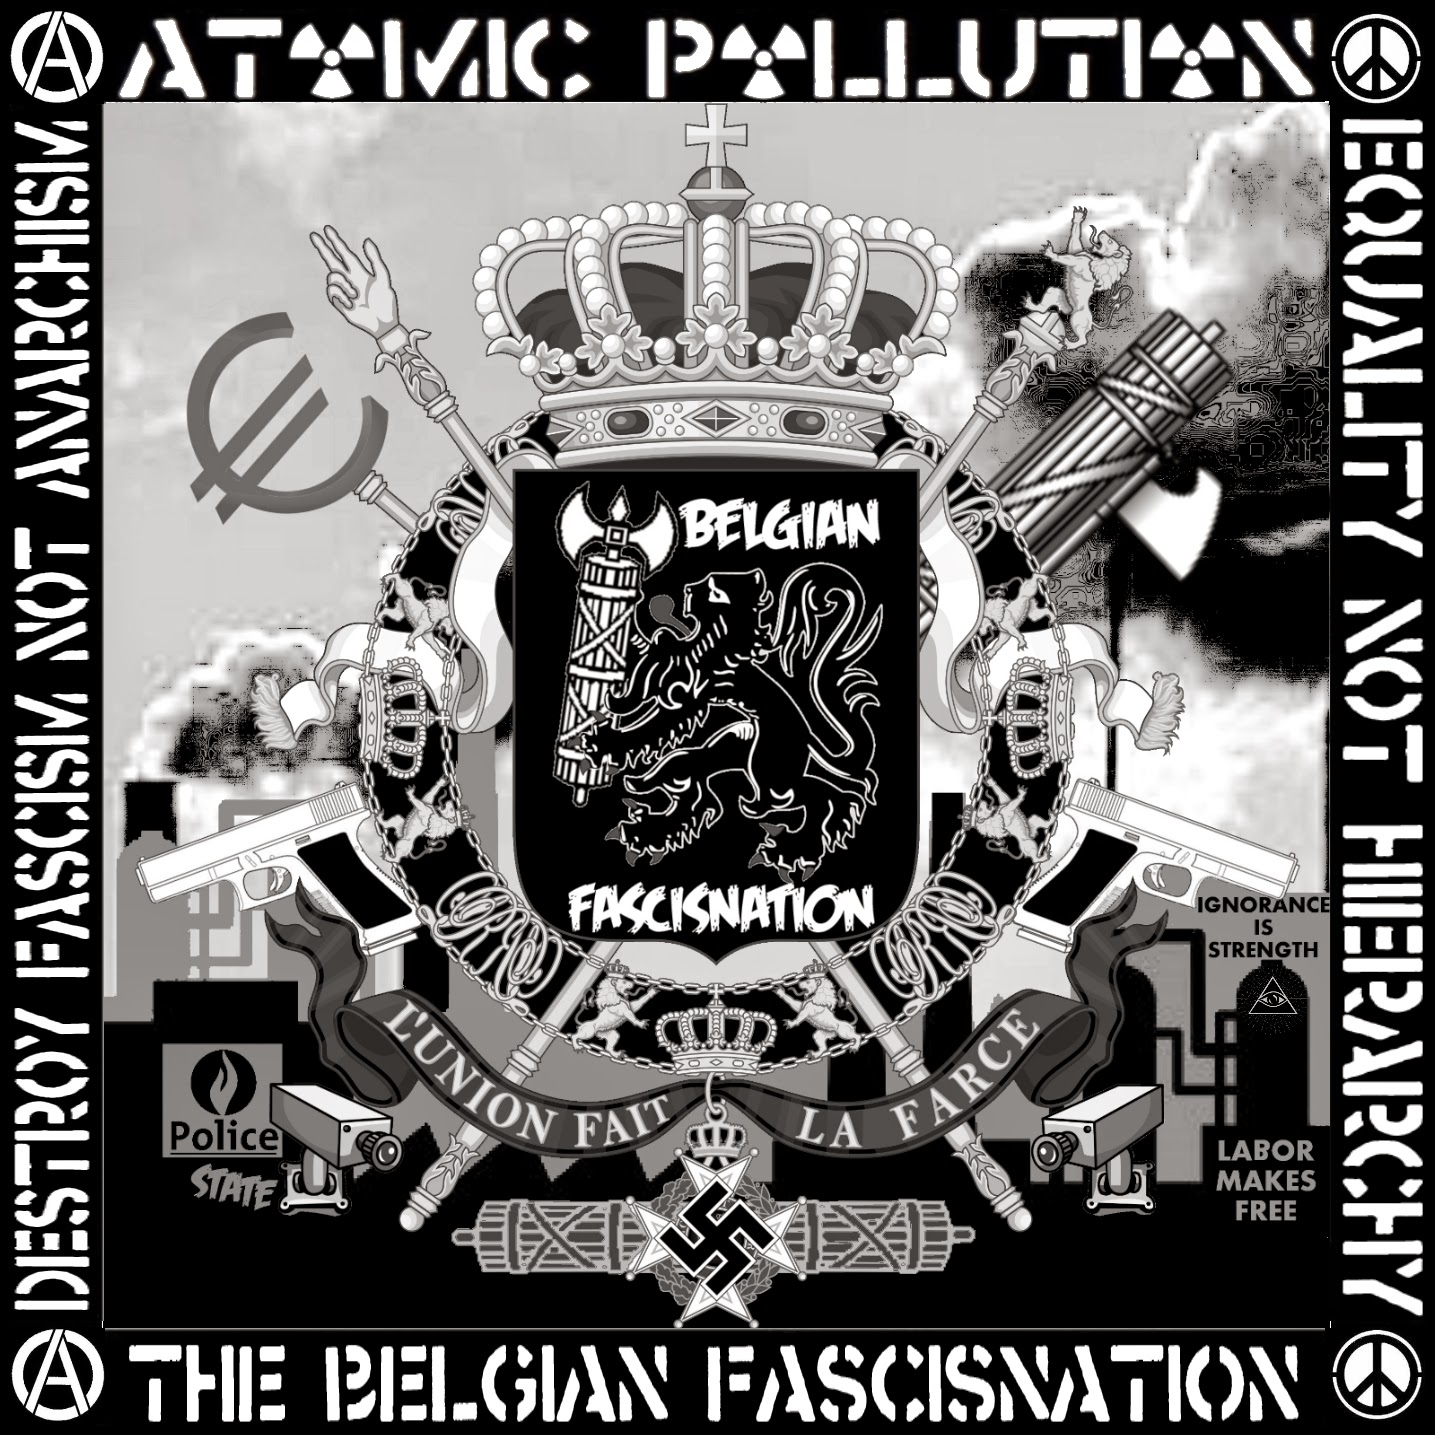 http://www.mediafire.com/download/tryy4a9856wadrt/Atomic_Pollution_the_belgian_fascisnation_mp3_320kbps.zip